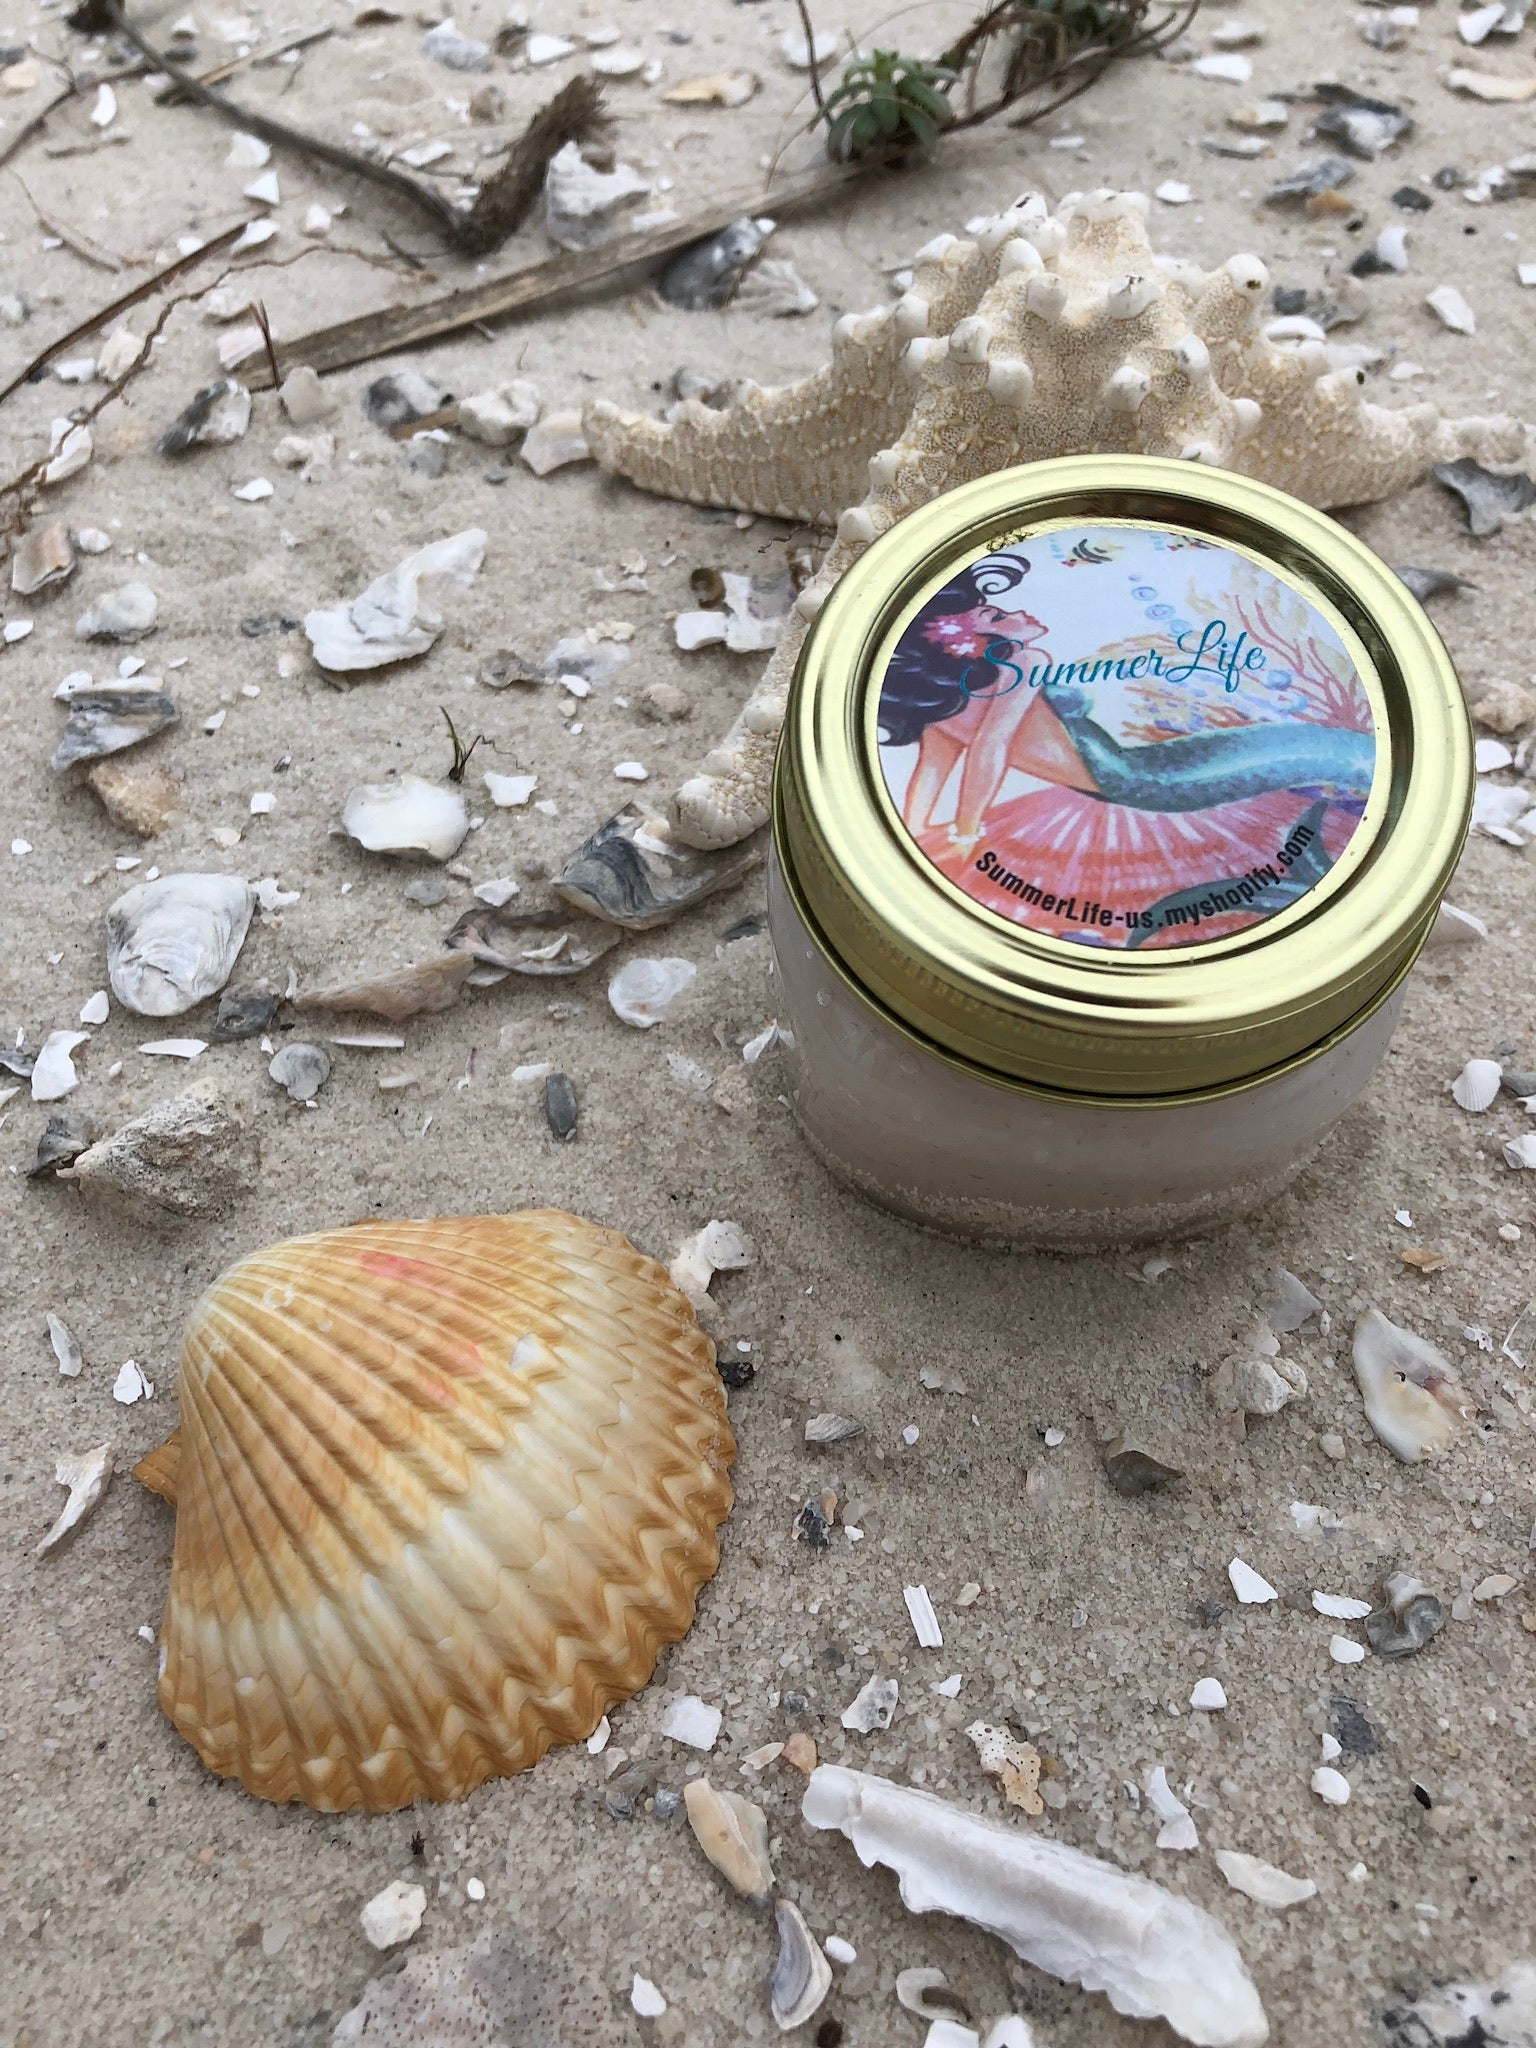 Mermaid Salt Scrub